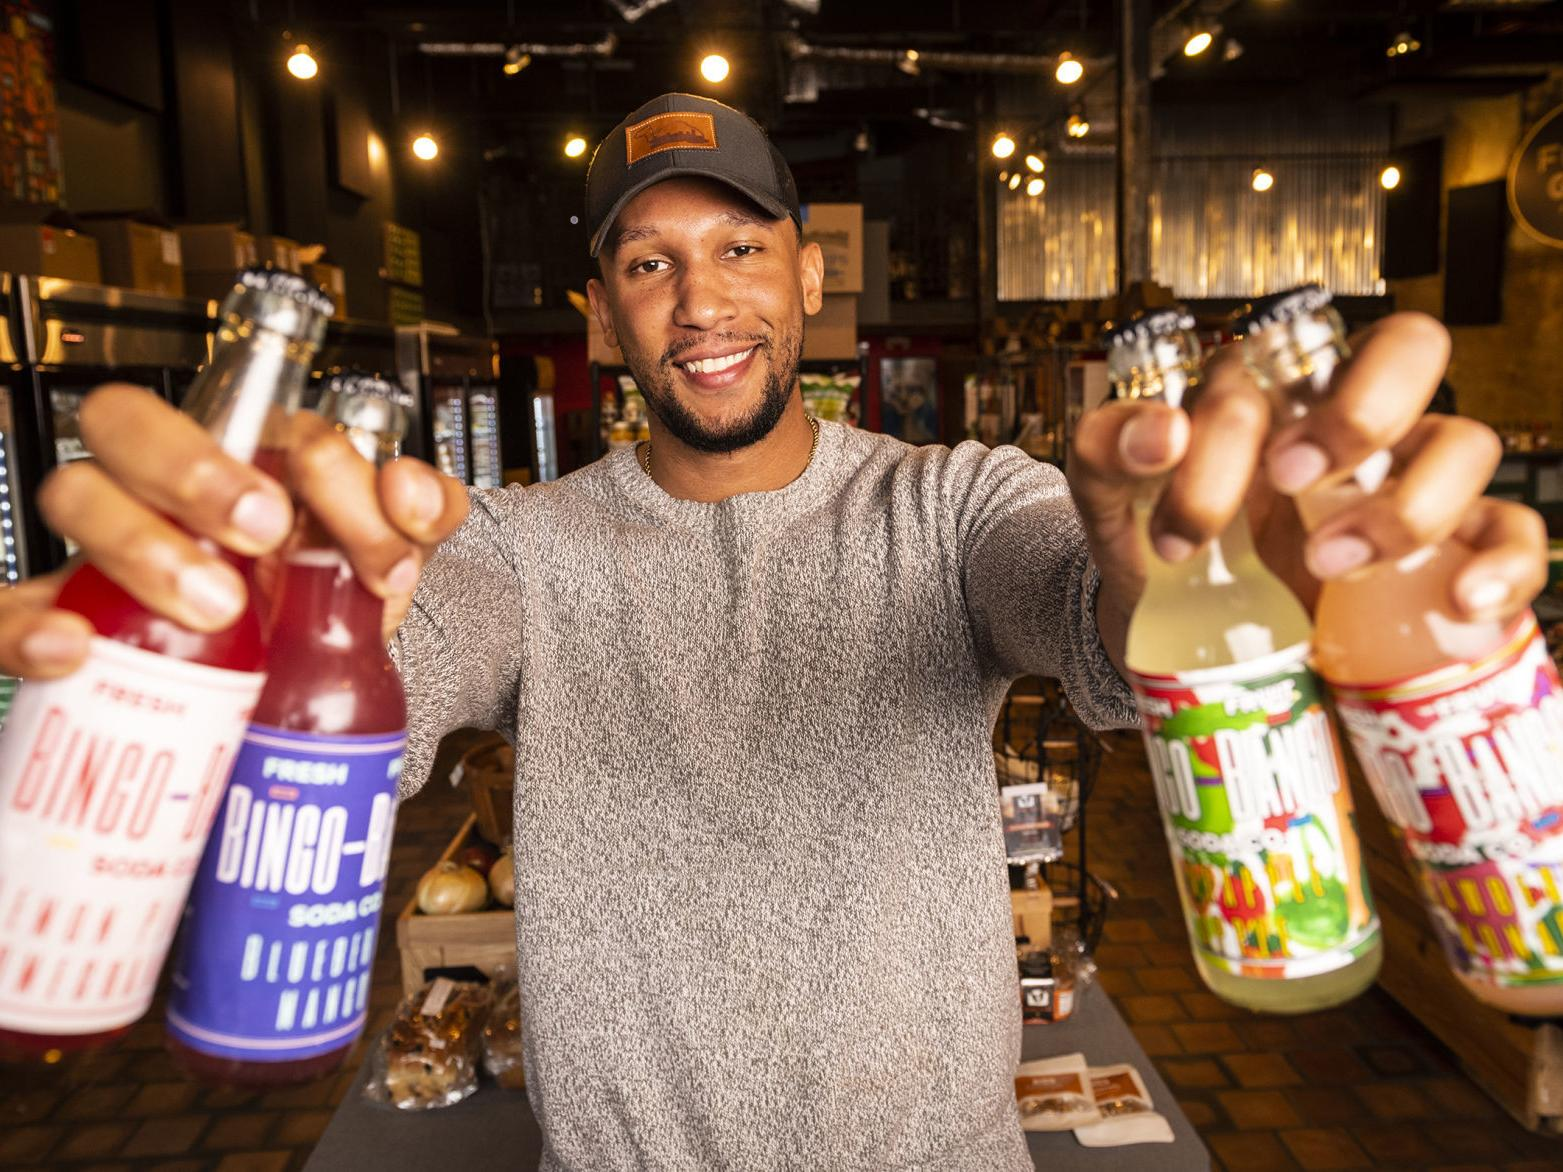 Local entrepreneur develops line of natural sodas